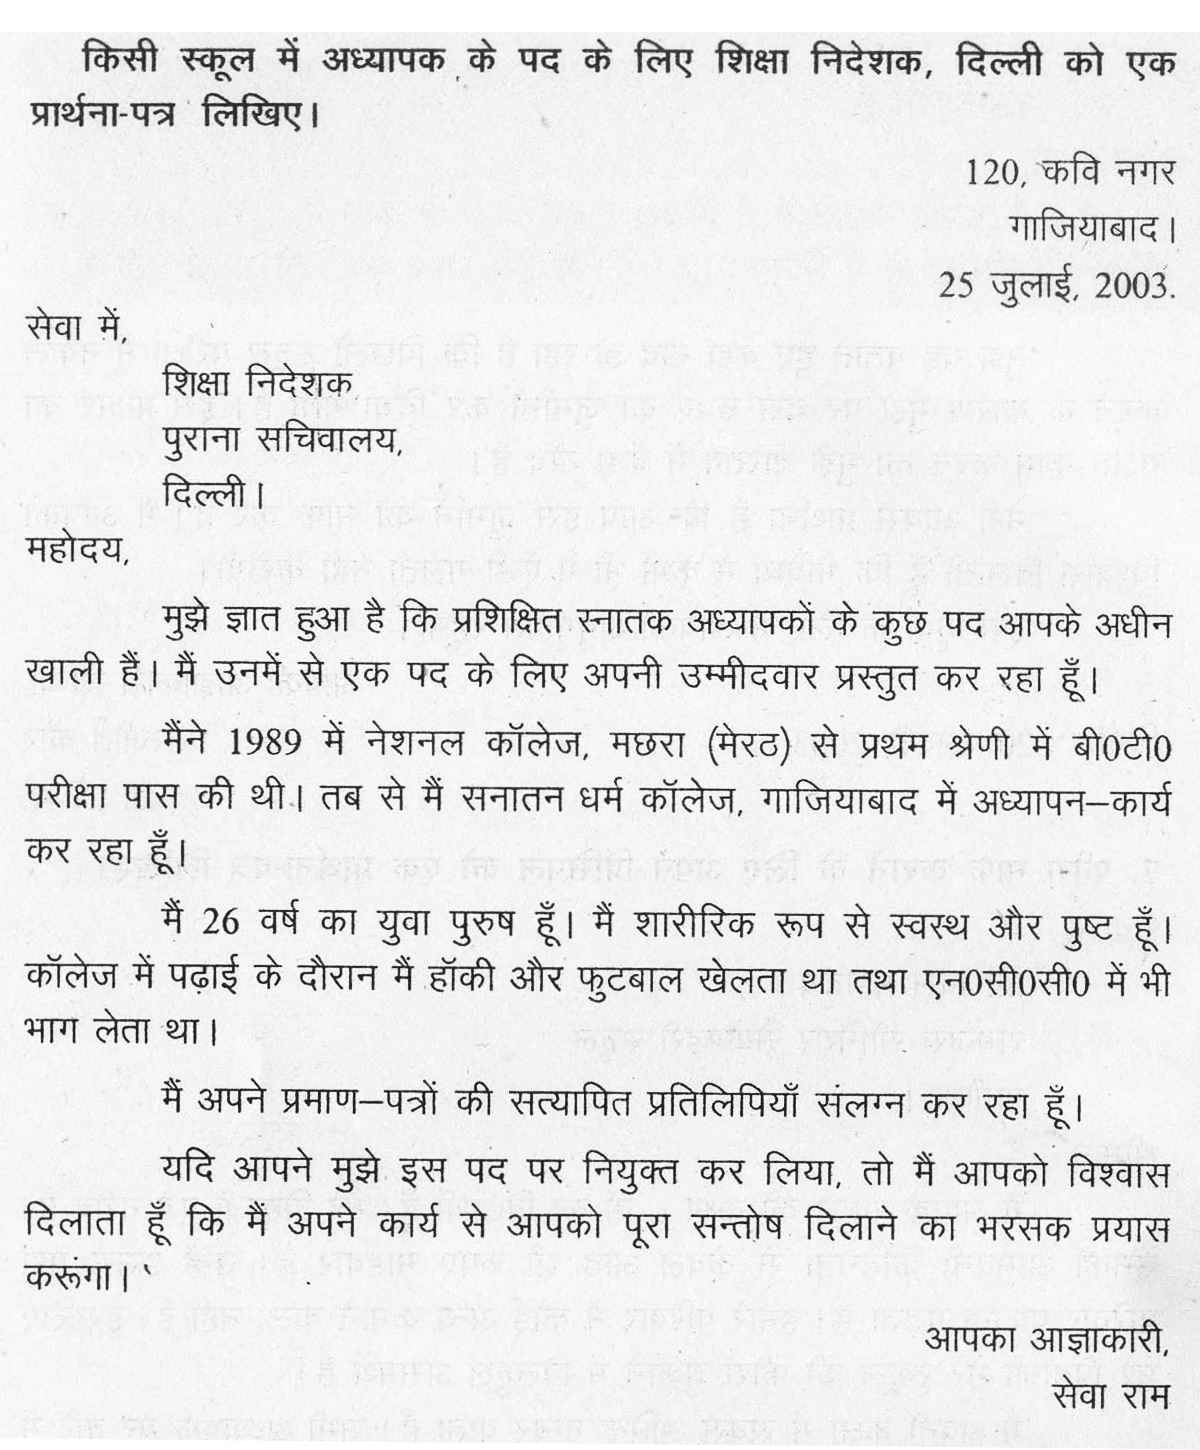 how to write a letter to bank manager for bank statement in marathi